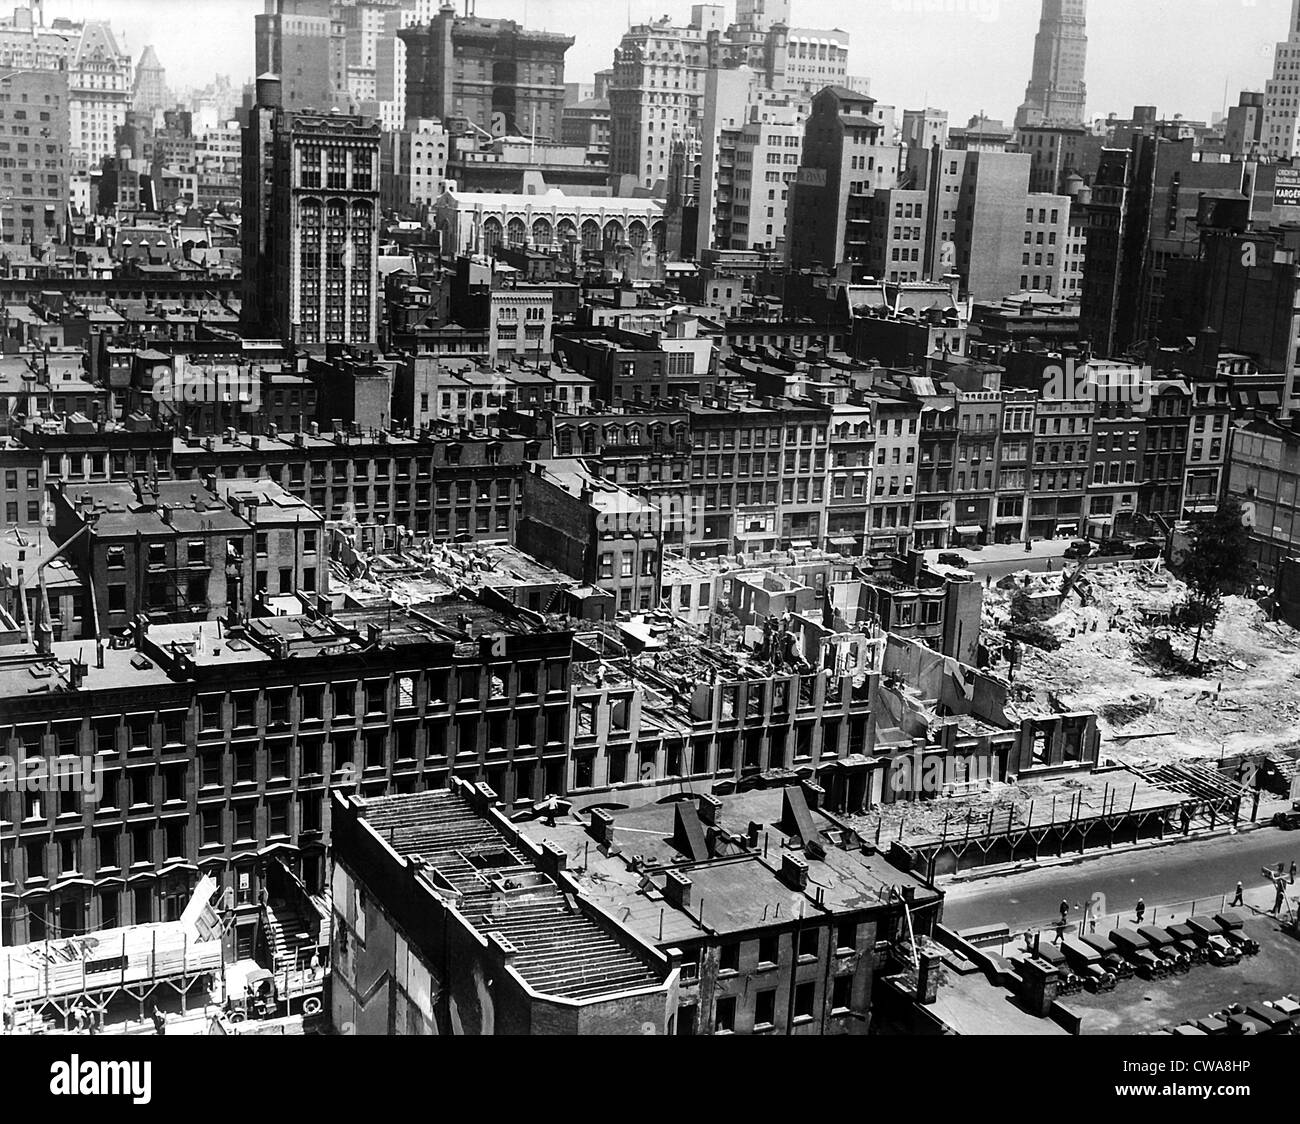 New York City, buildings built in the 1800s are demolished on Fifth & Sixth Avenue, between 48th & 51st - Stock Image